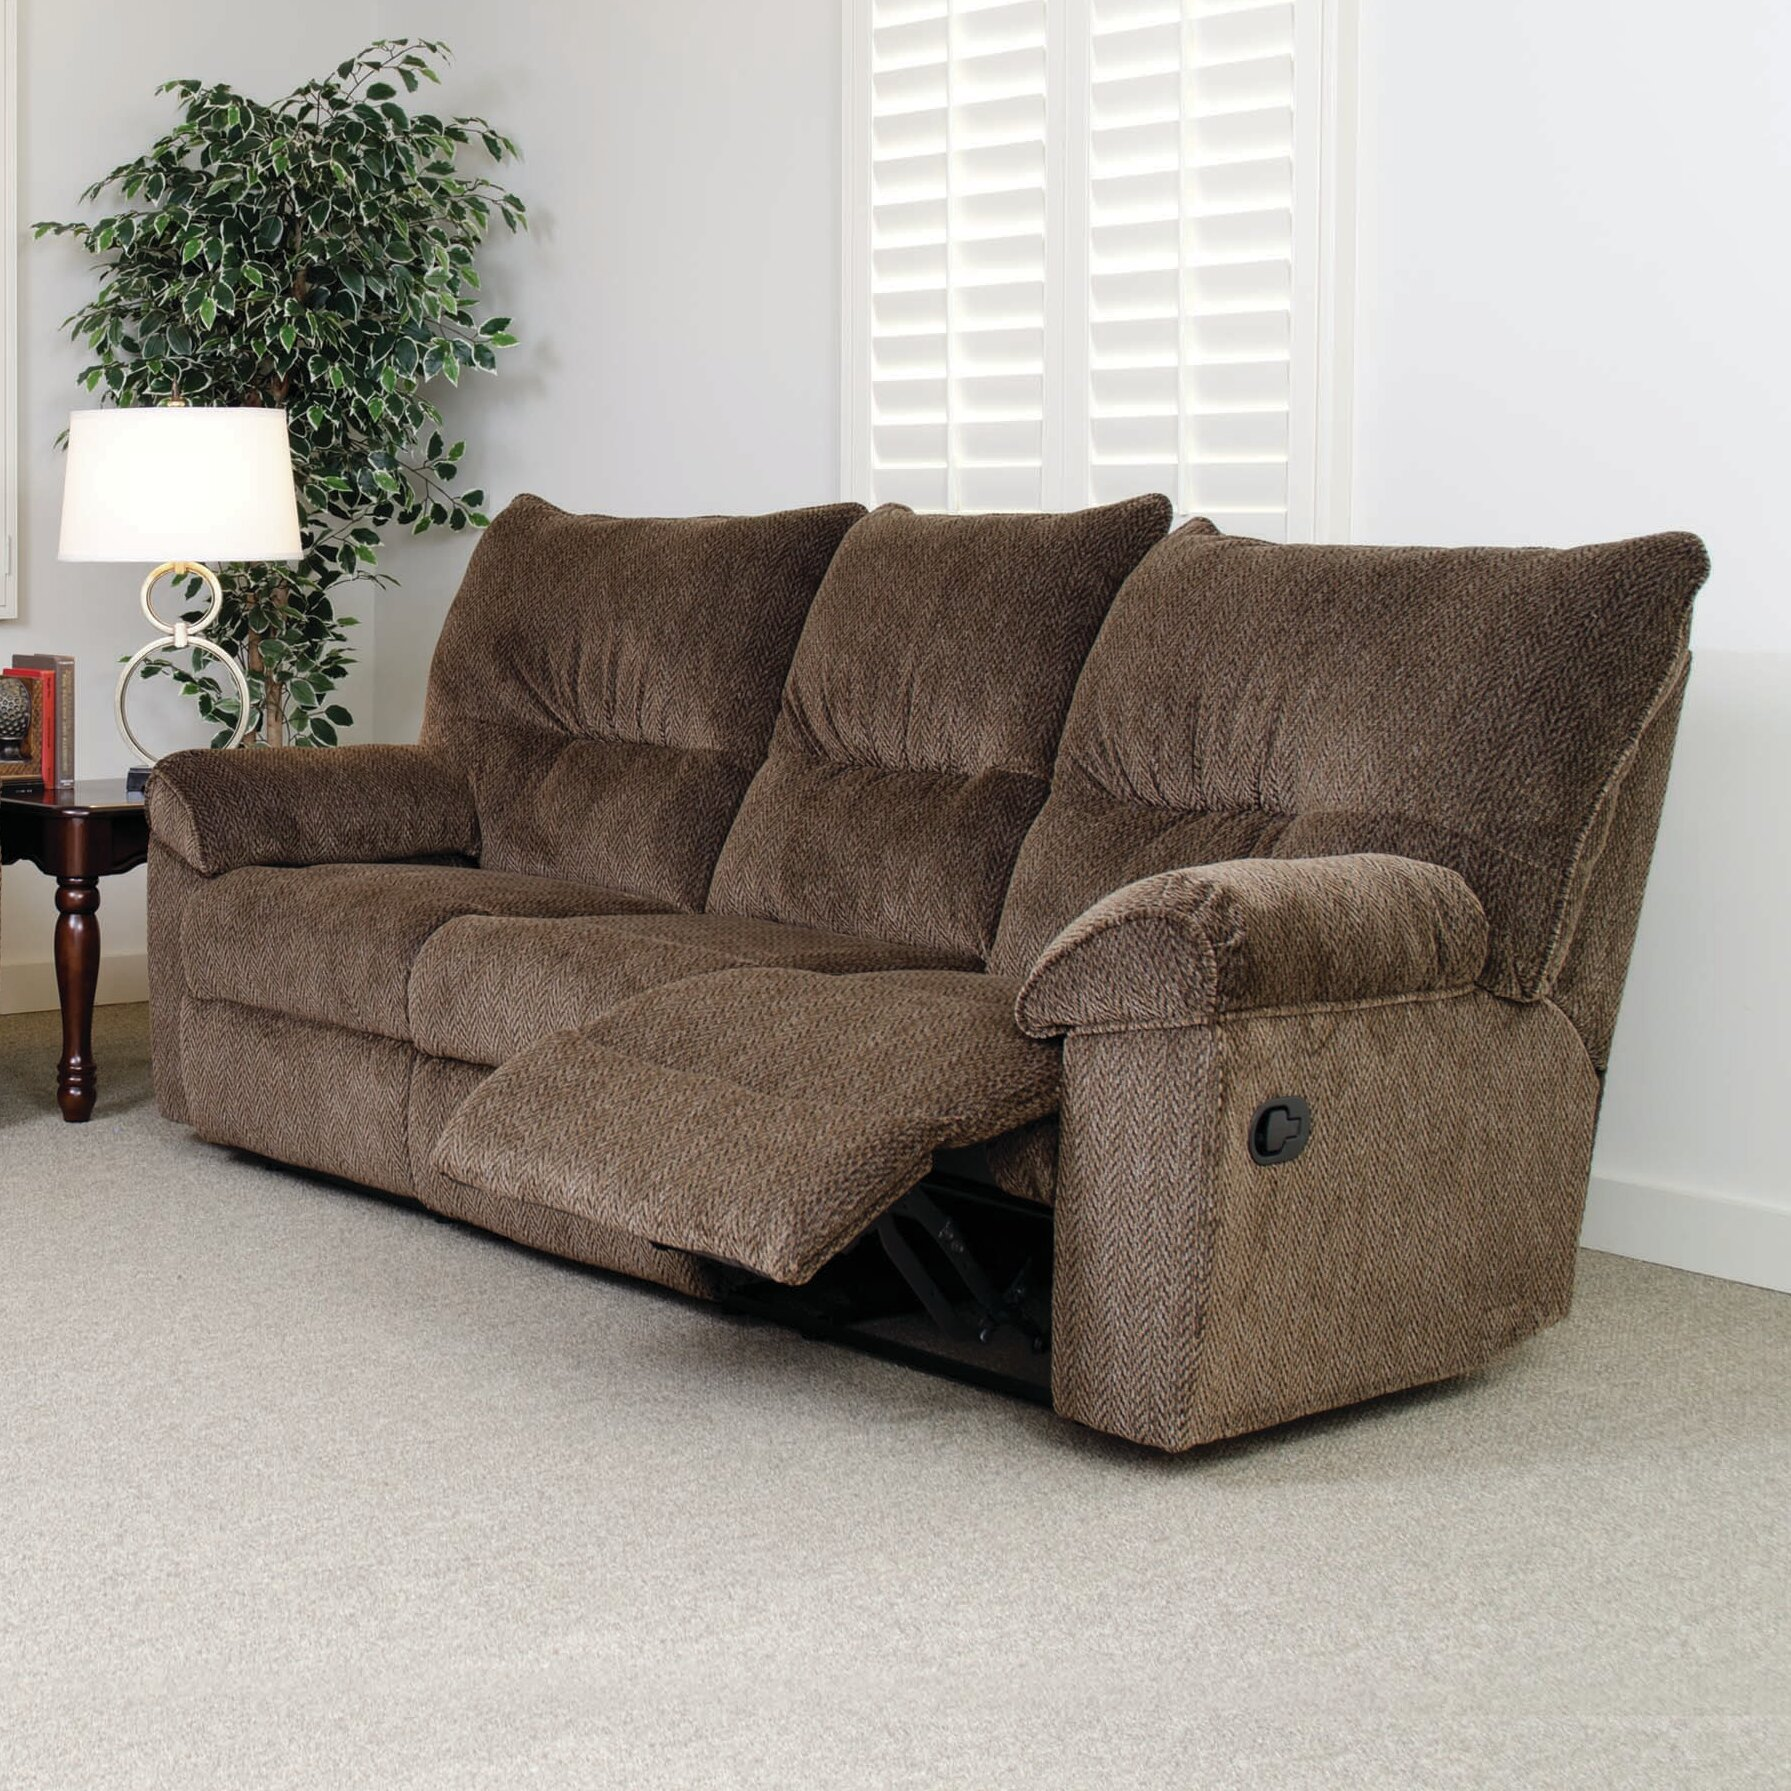 furniture reclining notify sofa me southern by inspire recliner home double motion